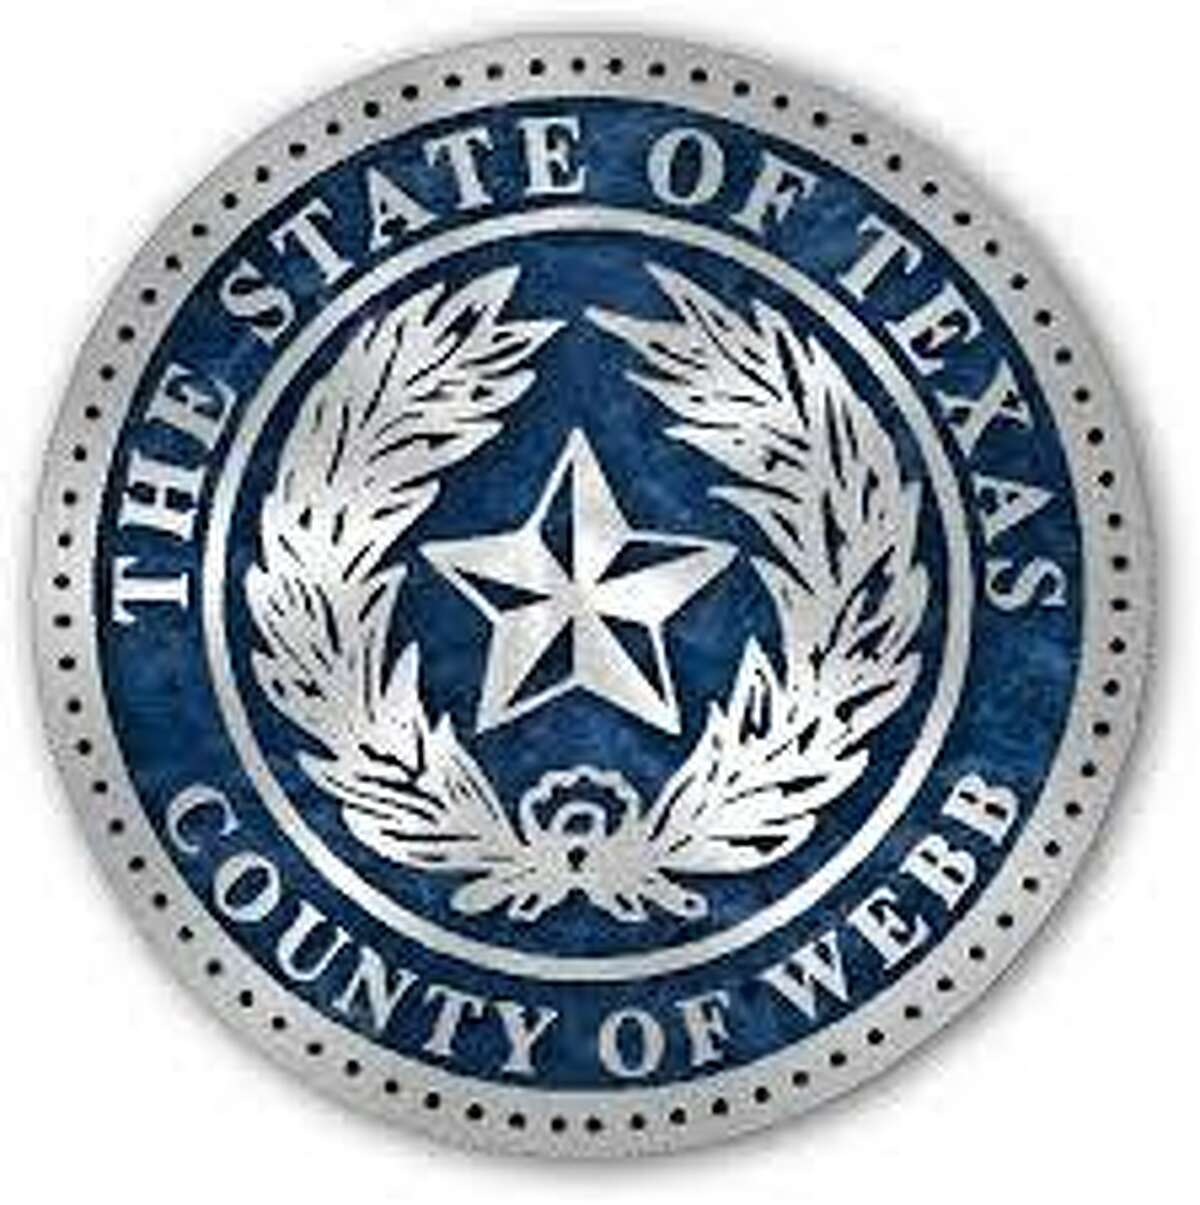 The official Webb County seal is shown.